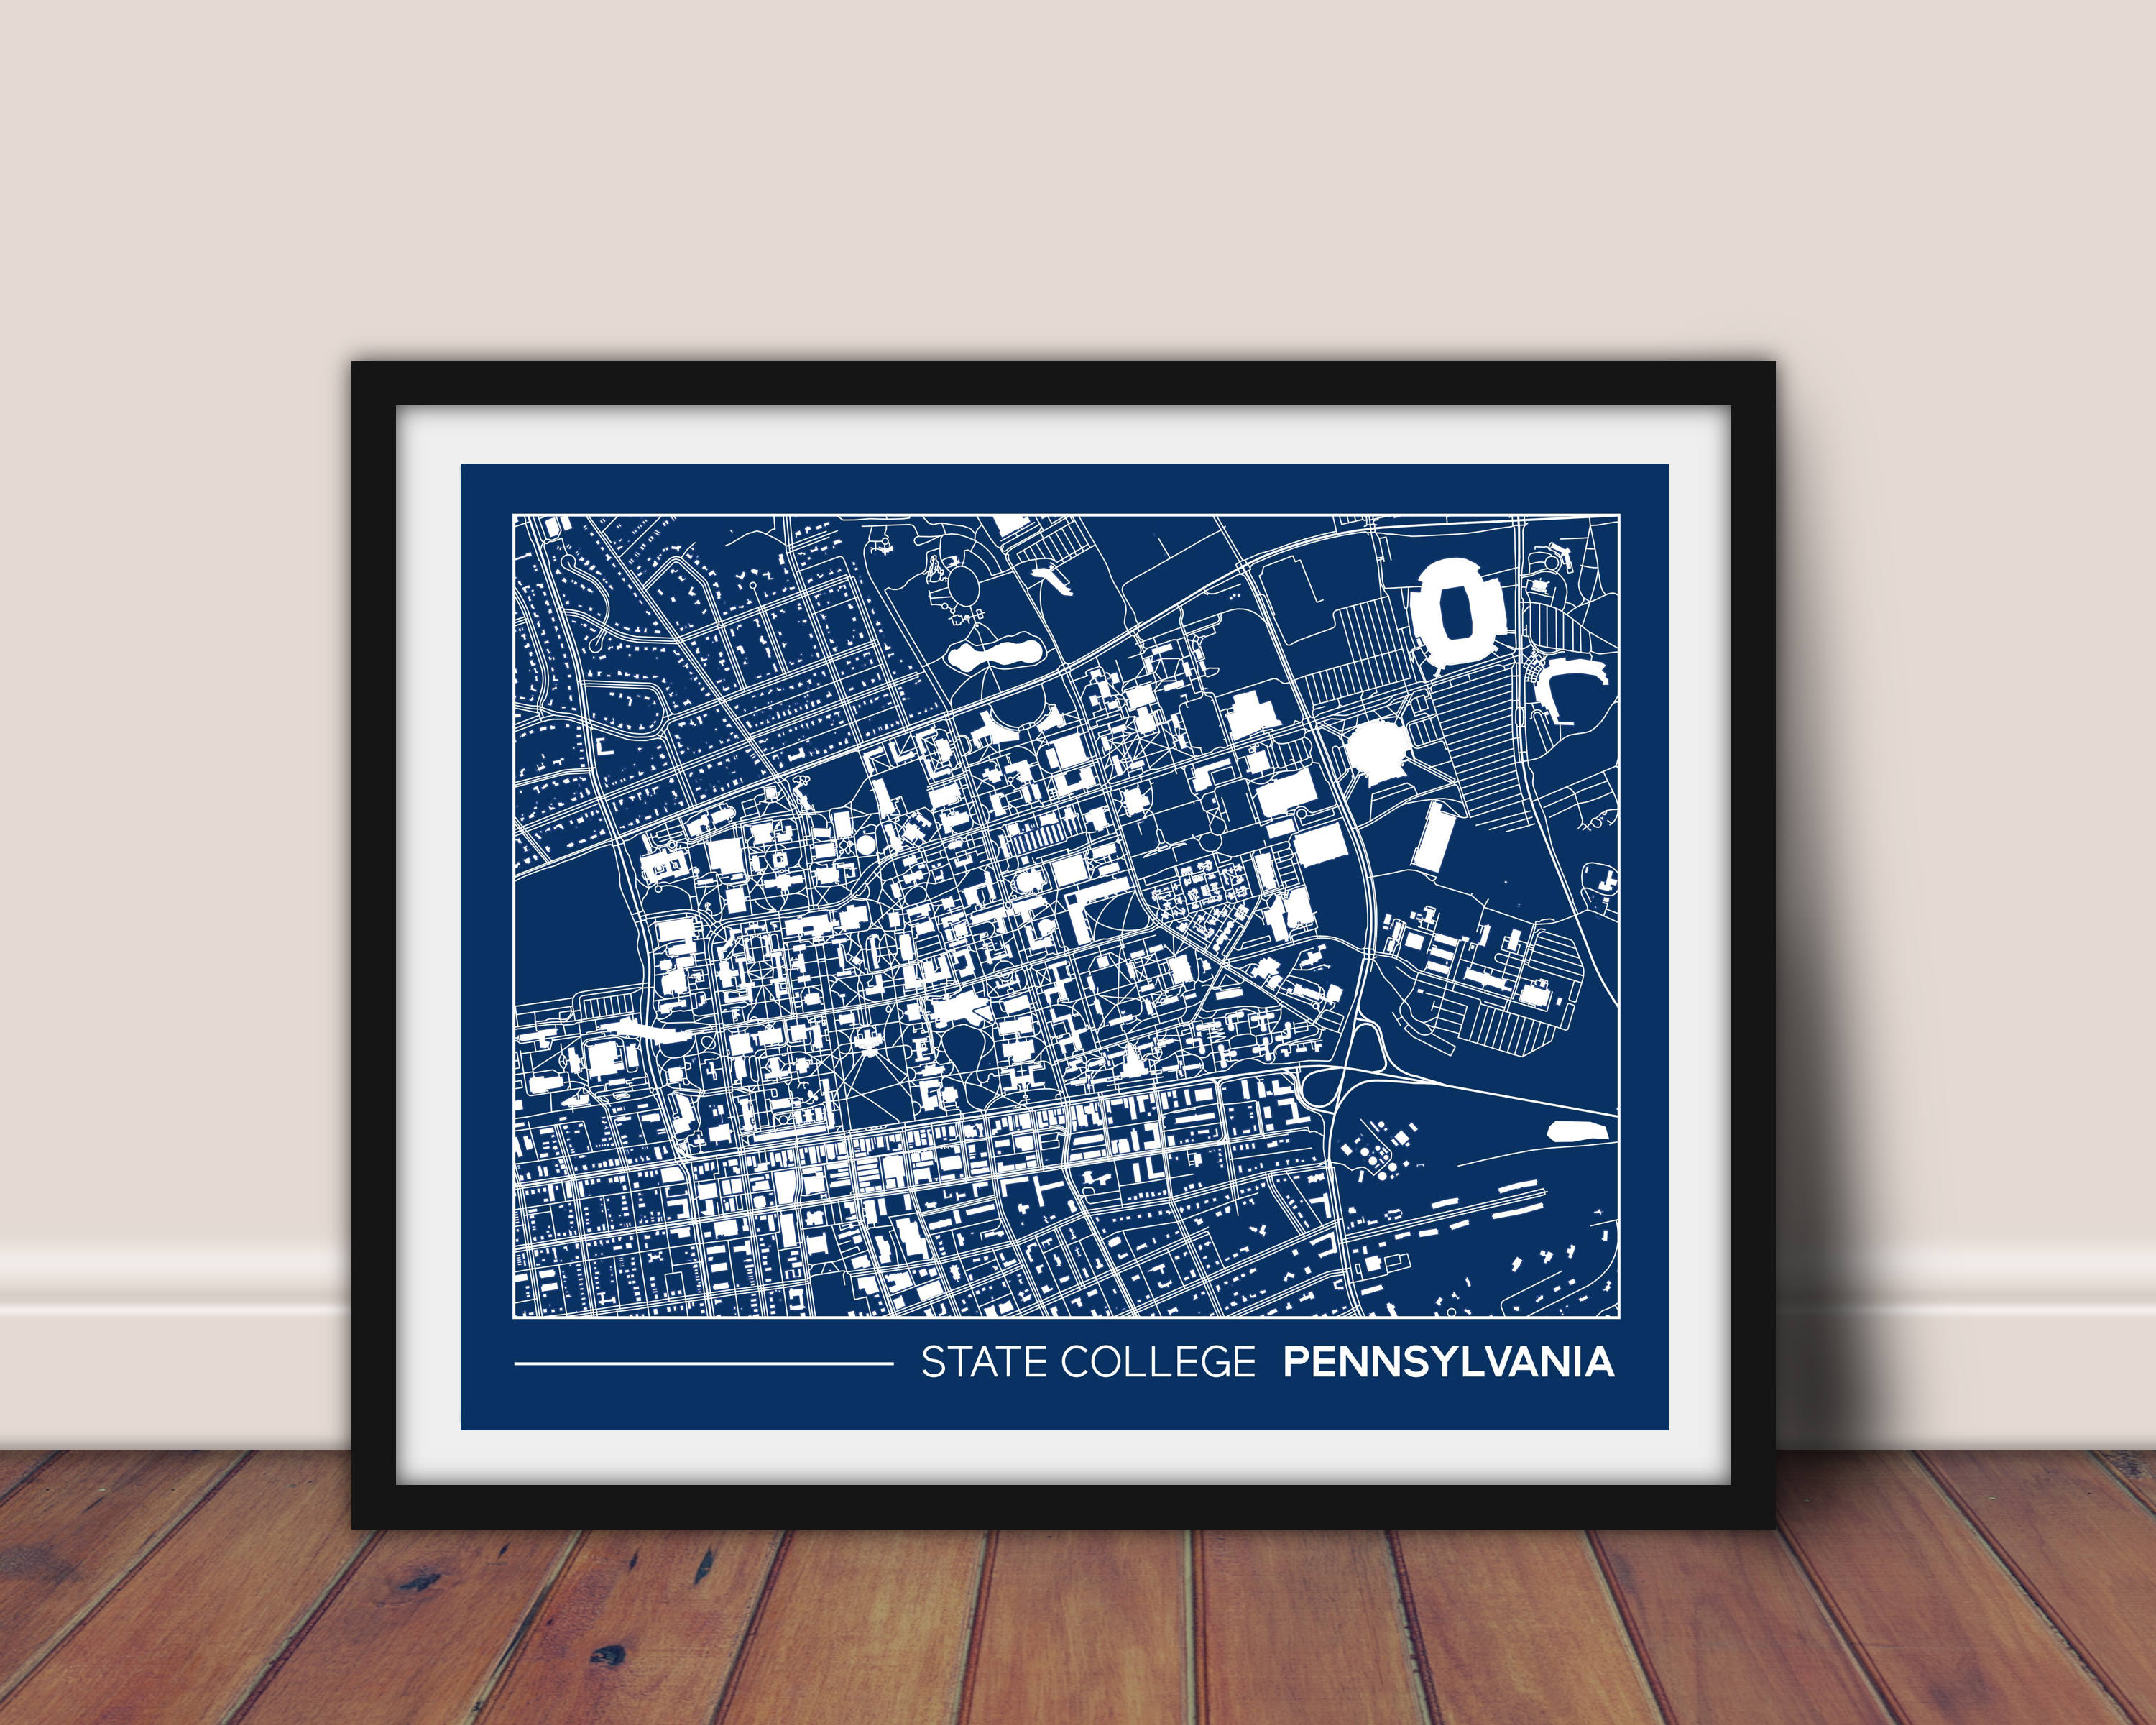 State College, Pennsylvania street map, Penn State University printable  campus map, college graduation gift, college apartment wall art 8x10